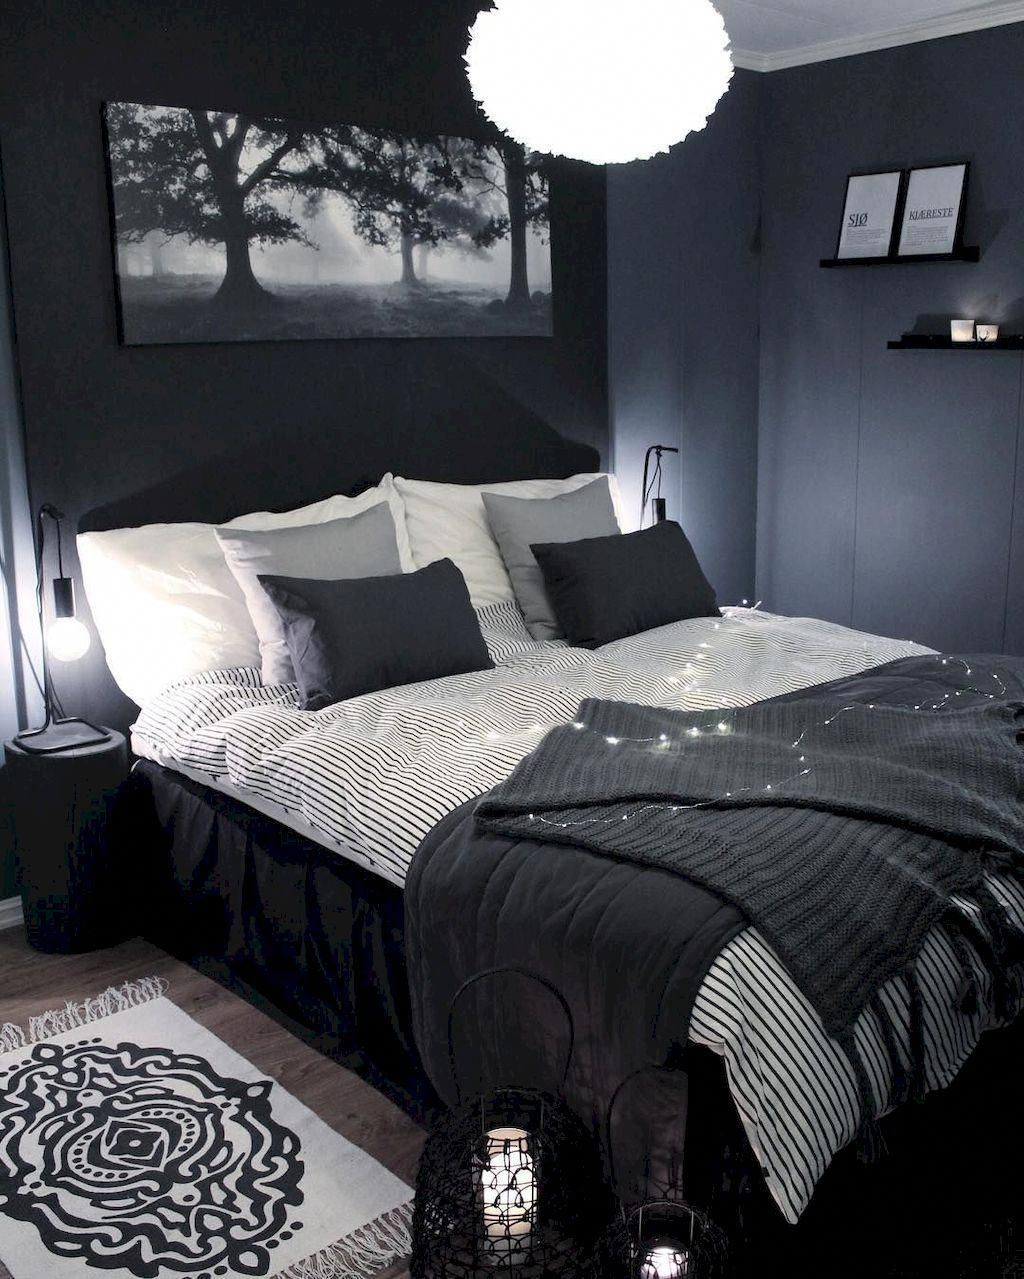 Best Bedroom Design Ideas With Black And White Color Schemes 15 In 2020 Room Ideas Bedroom Bedroom Color Schemes Mens Bedroom Decor